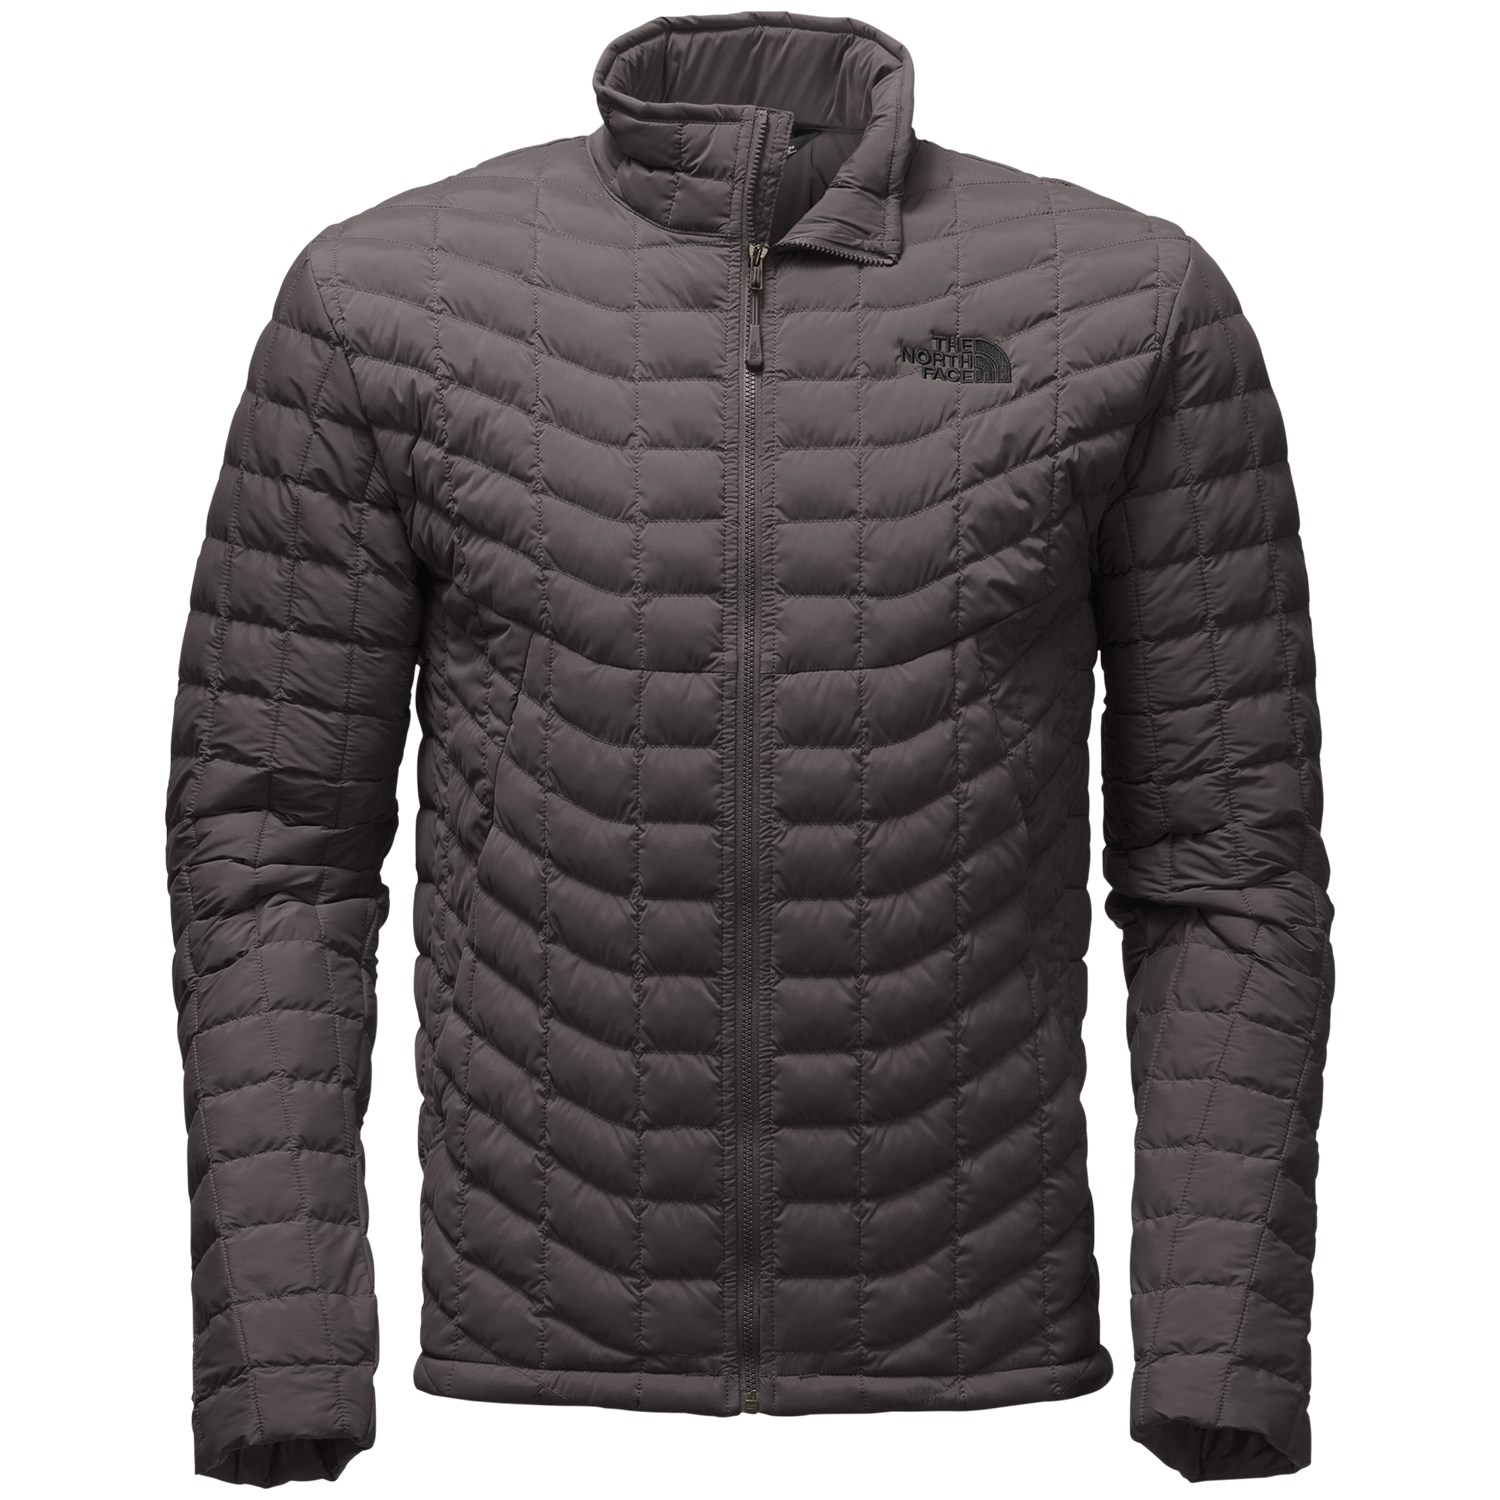 437ba9510 The North Face Stretch ThermoBall™ Jacket